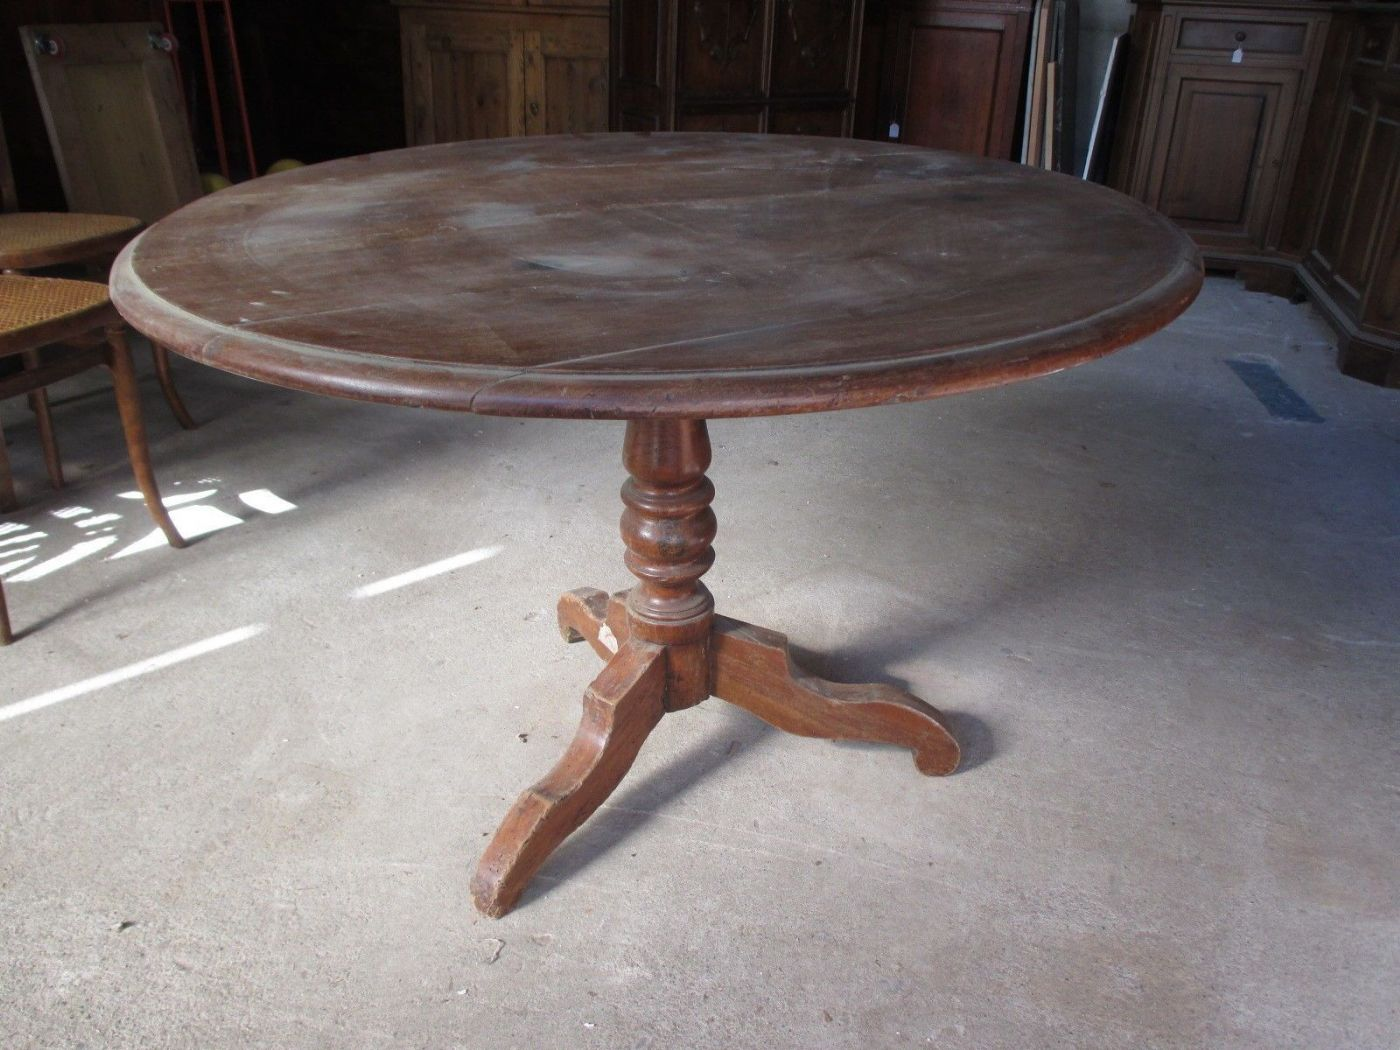 Tavolo Con Piede Centrale fixed round table in walnut with central leg - half of the